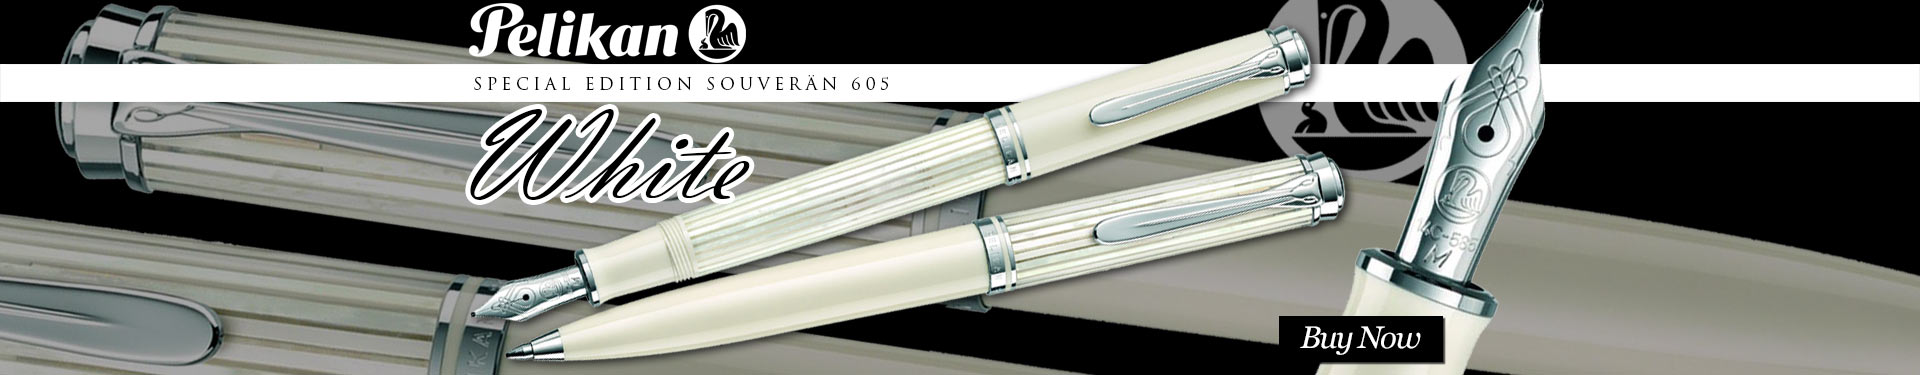 Pelikan Special Edition 605 White